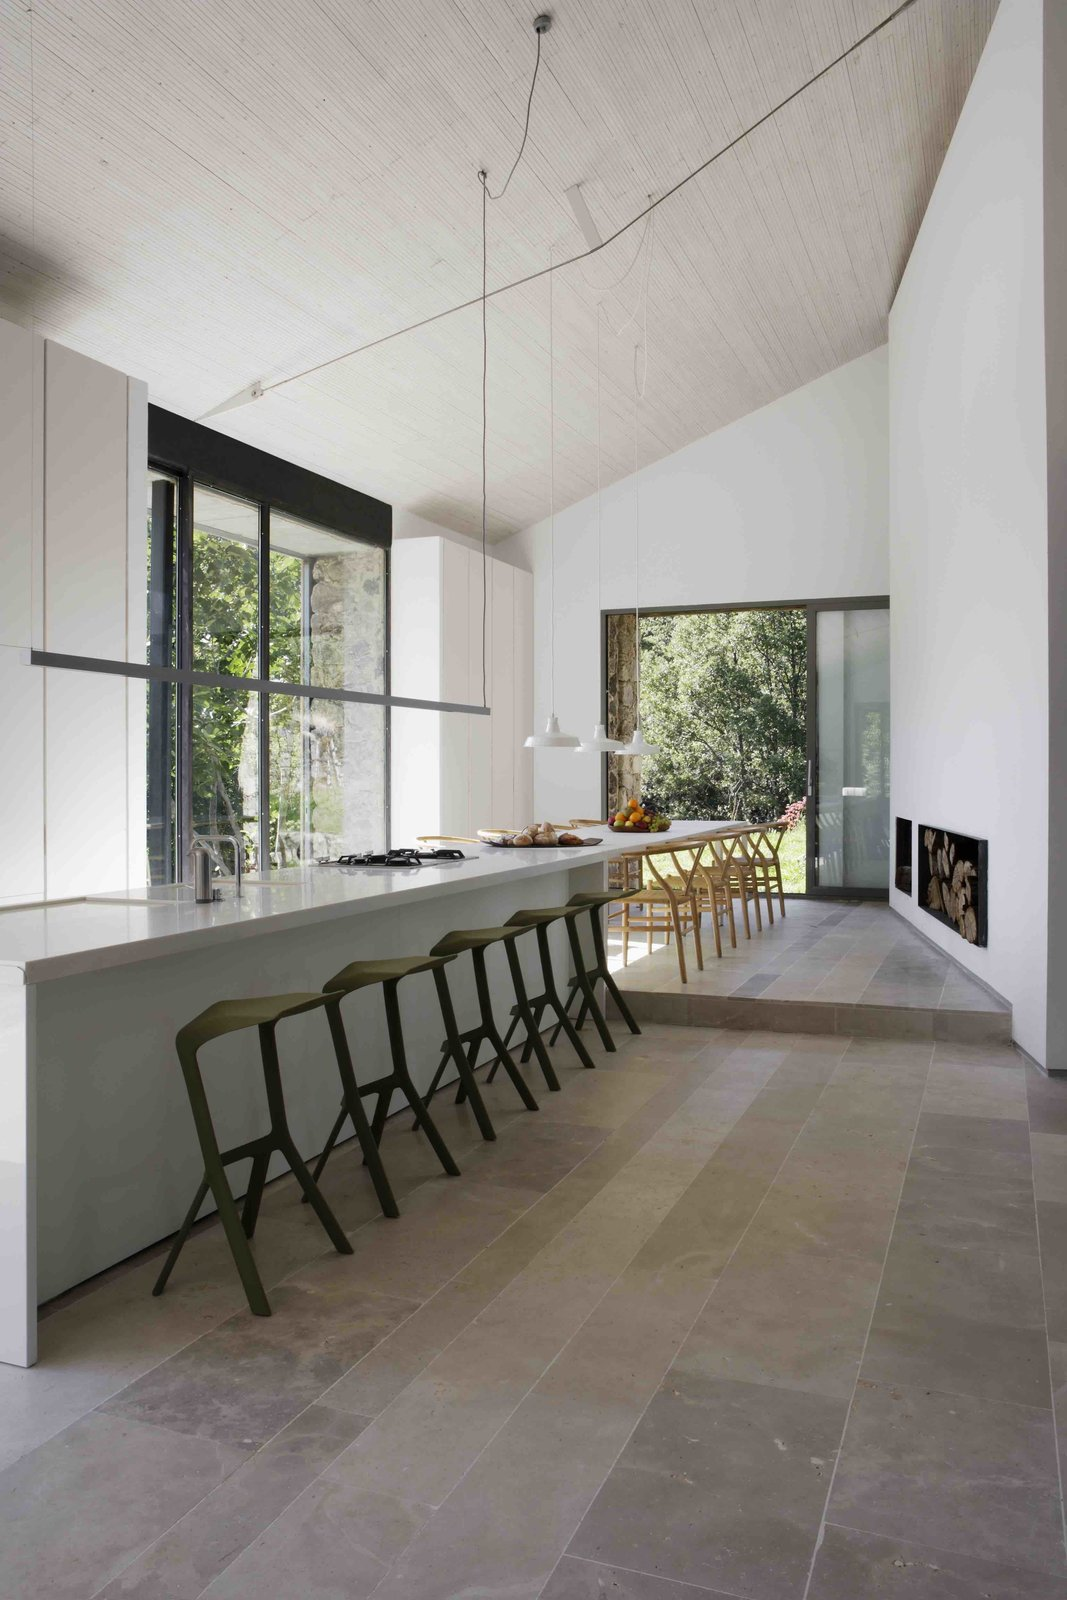 Kitchen, Porcelain Tile Floor, Drop In Sink, and Range  Photo 6 of 14 in An Abandoned Stable in Spain Is Transformed Into a Sustainable Vacation Home For Rent